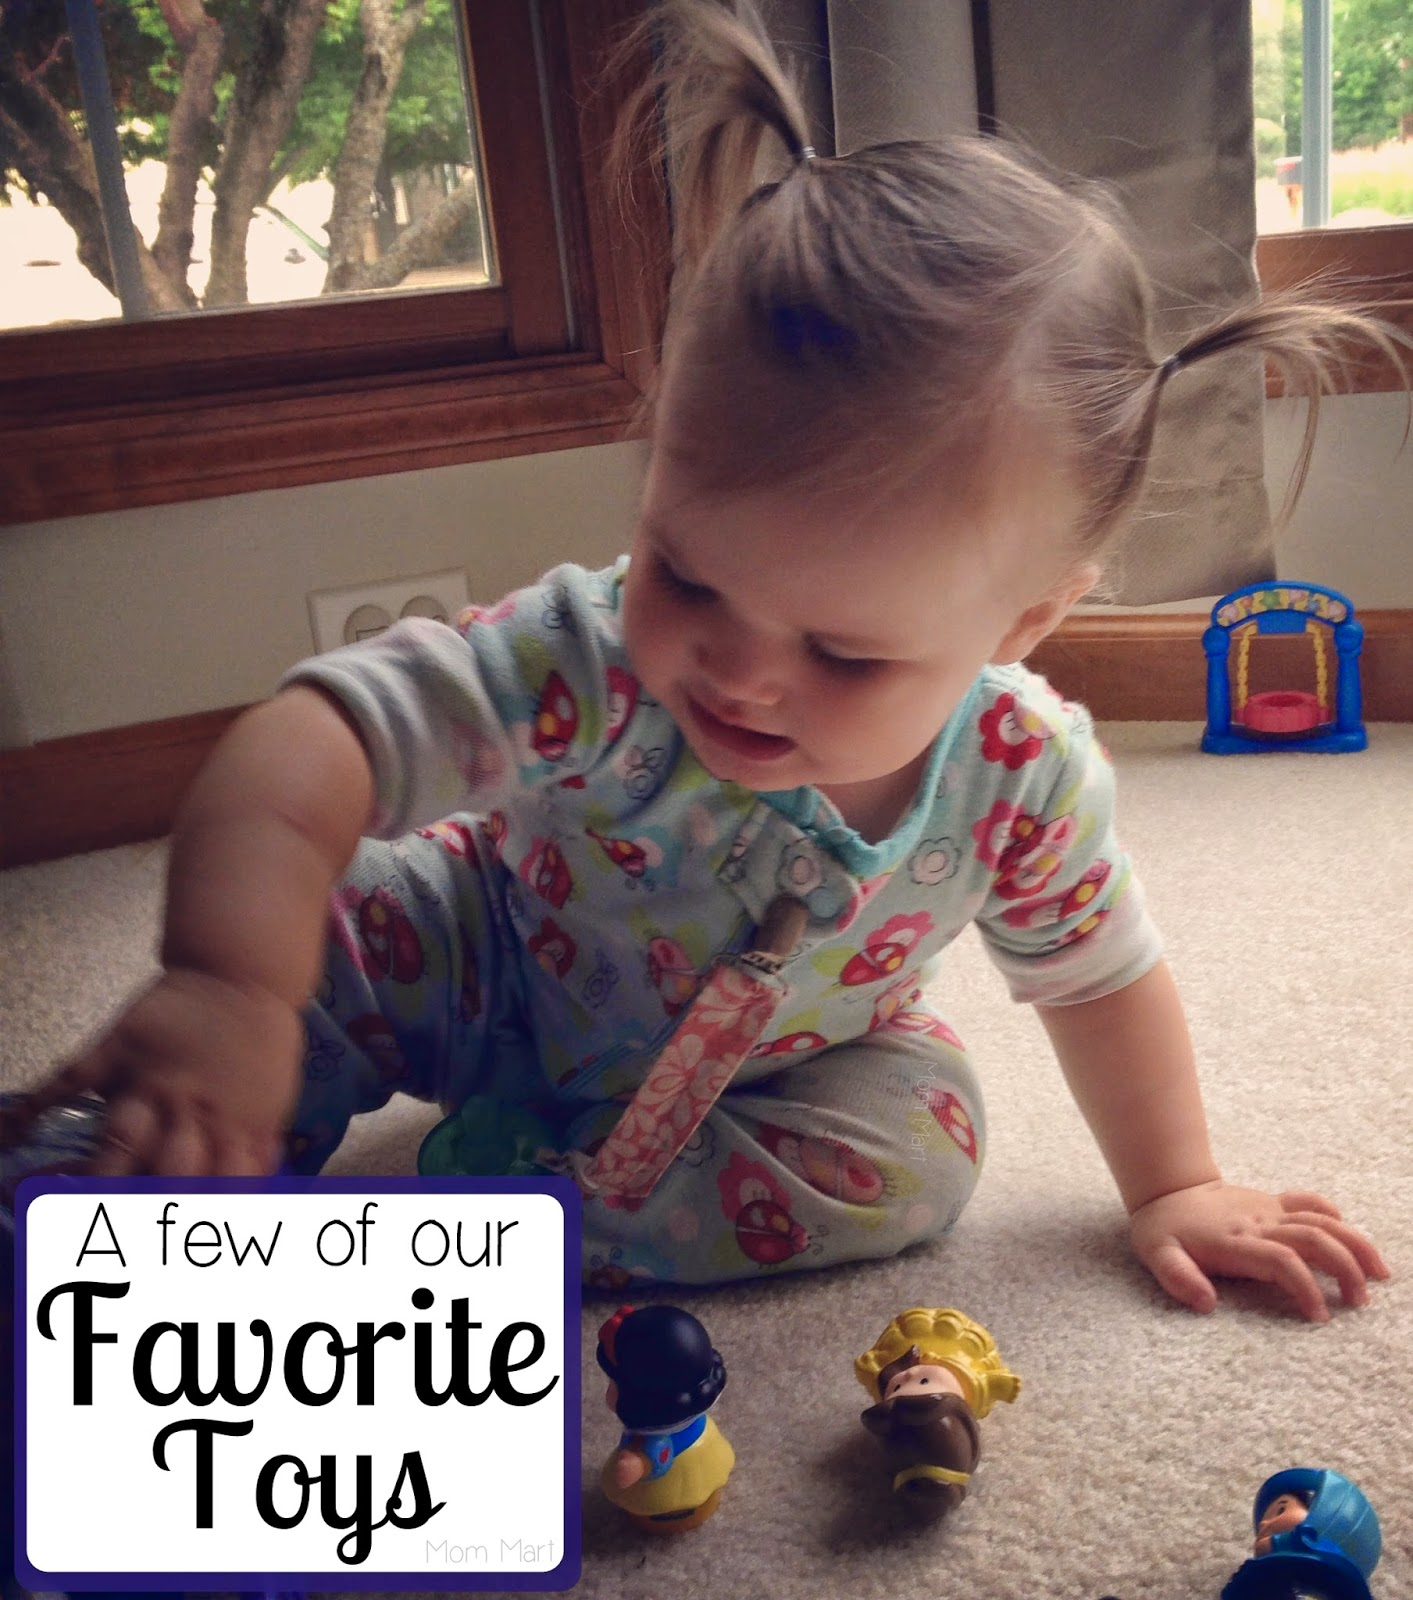 A few of our favorite toys #ToysForKids #PlayTime